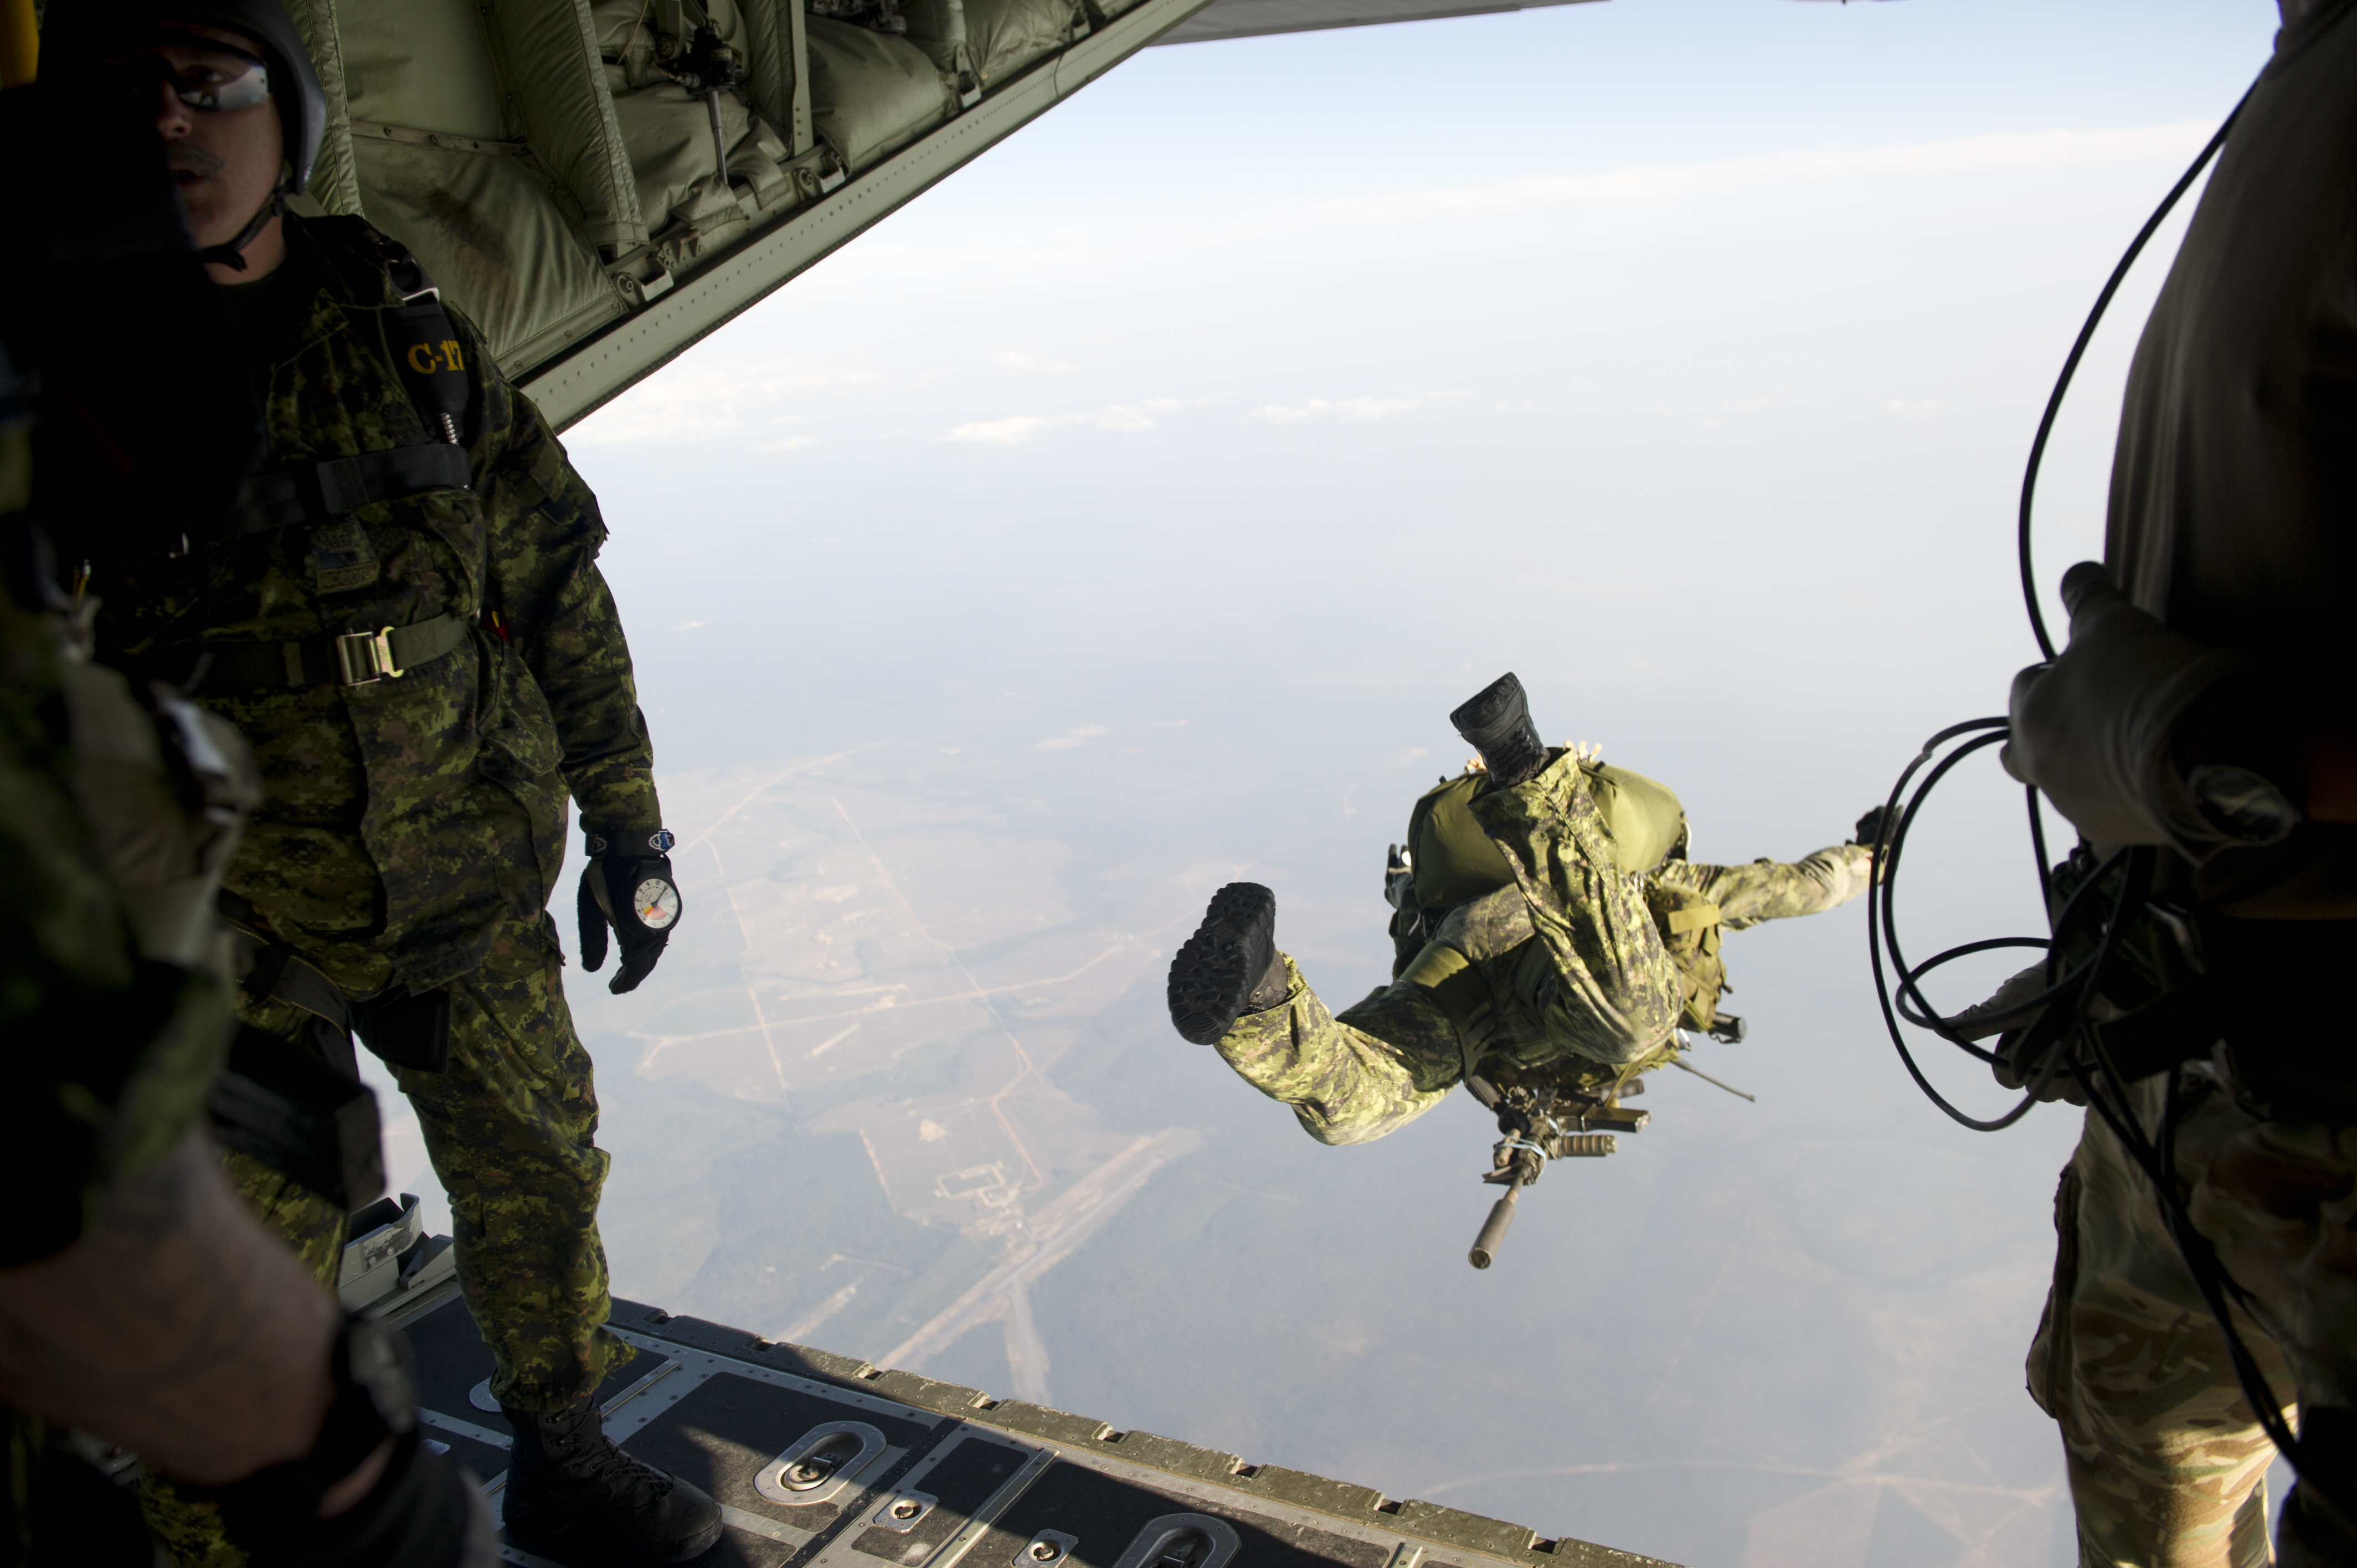 Jumpers from the Canadian Special Operations Regiment exit a British C-130 during a HALO jump near Hurlburt Field, Florida on April 25, 2013